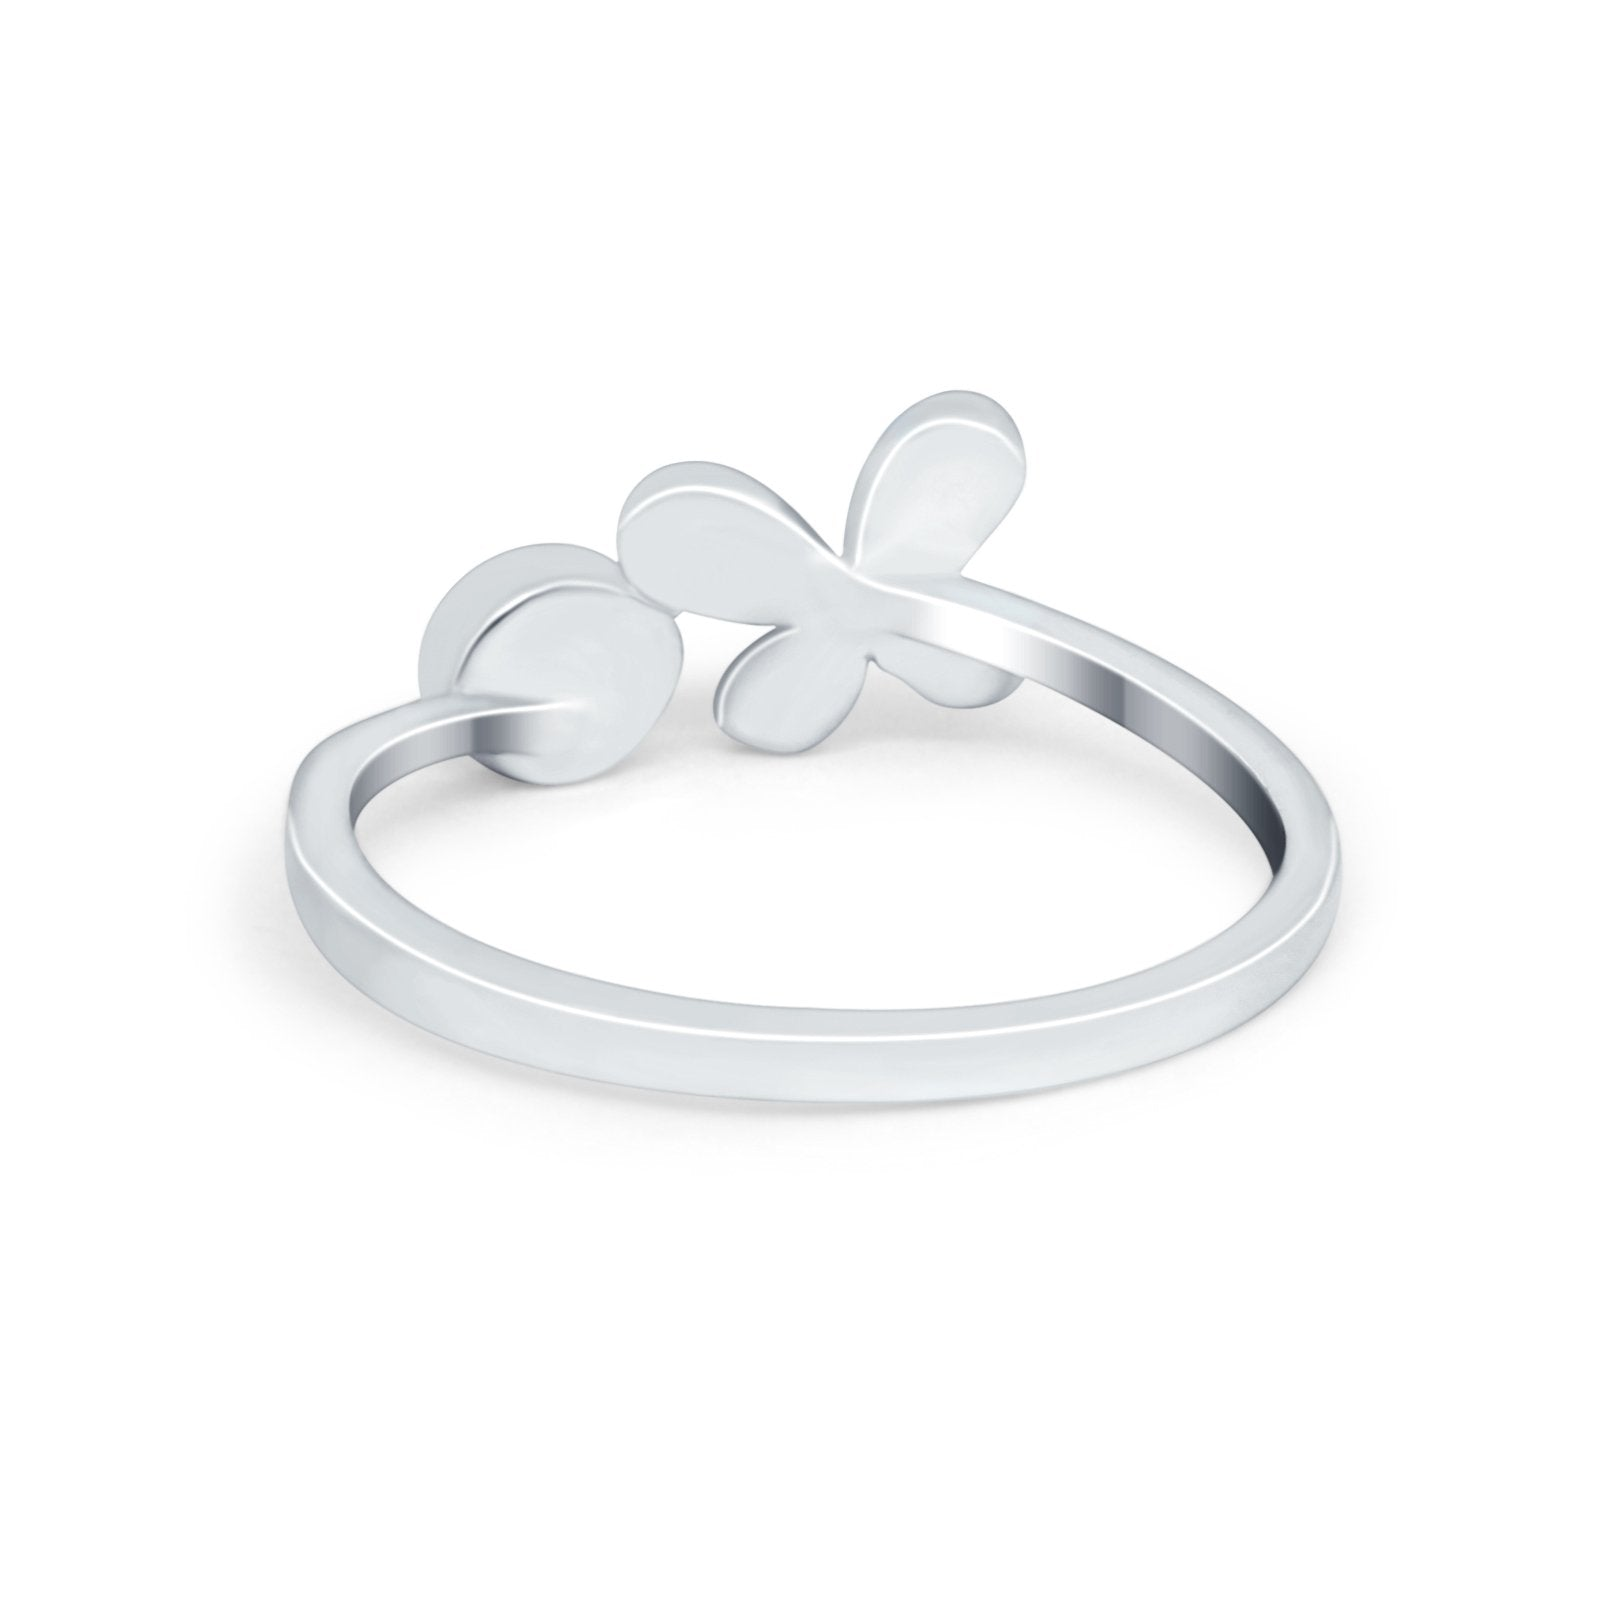 Petite Dainty Butterfly Thumb Ring Band Simulated Cubic Zirconia 925 Sterling Silver